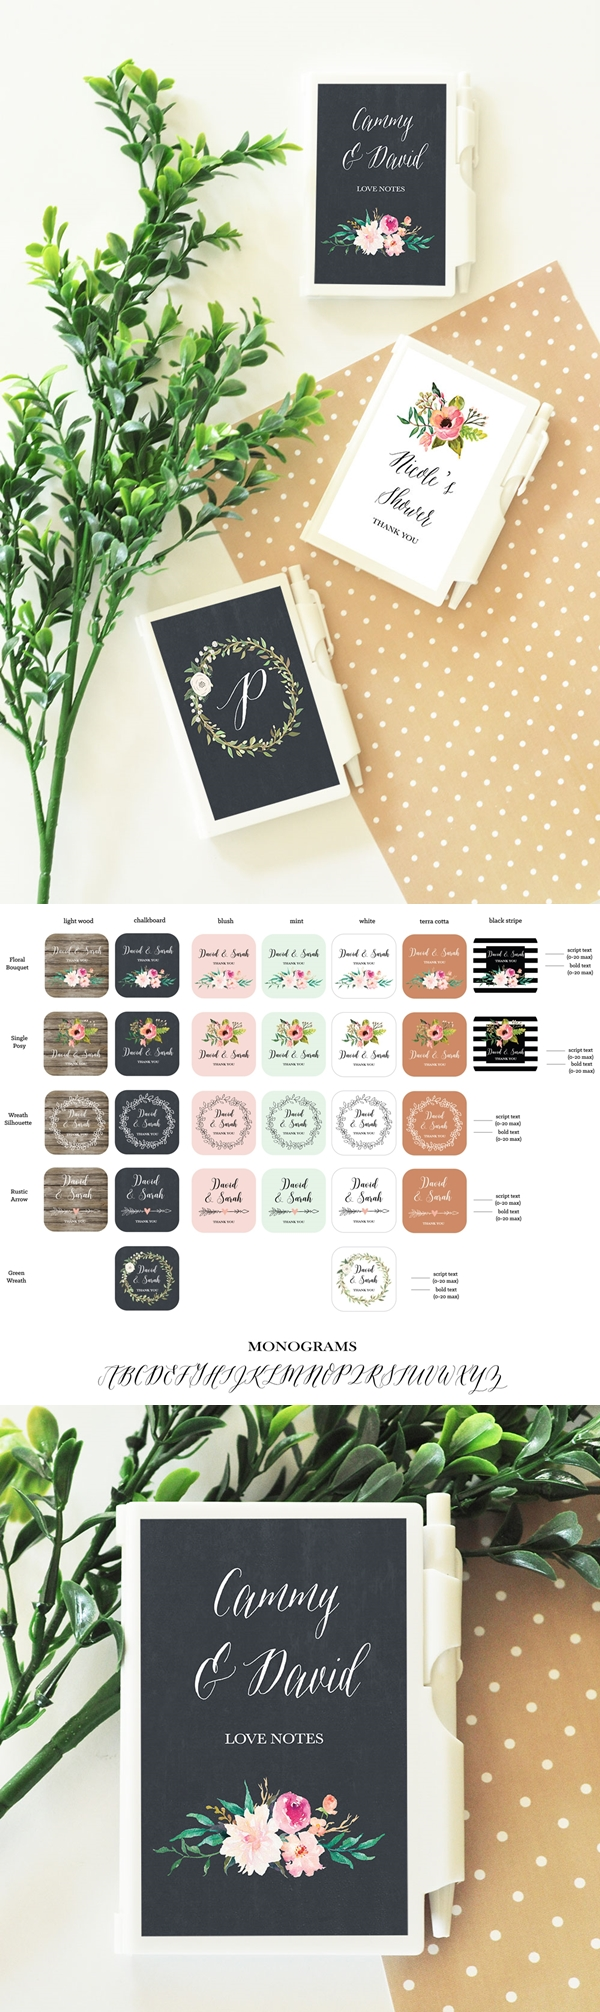 Event Blossom Personalized Notebooks with Floral Garden Designs